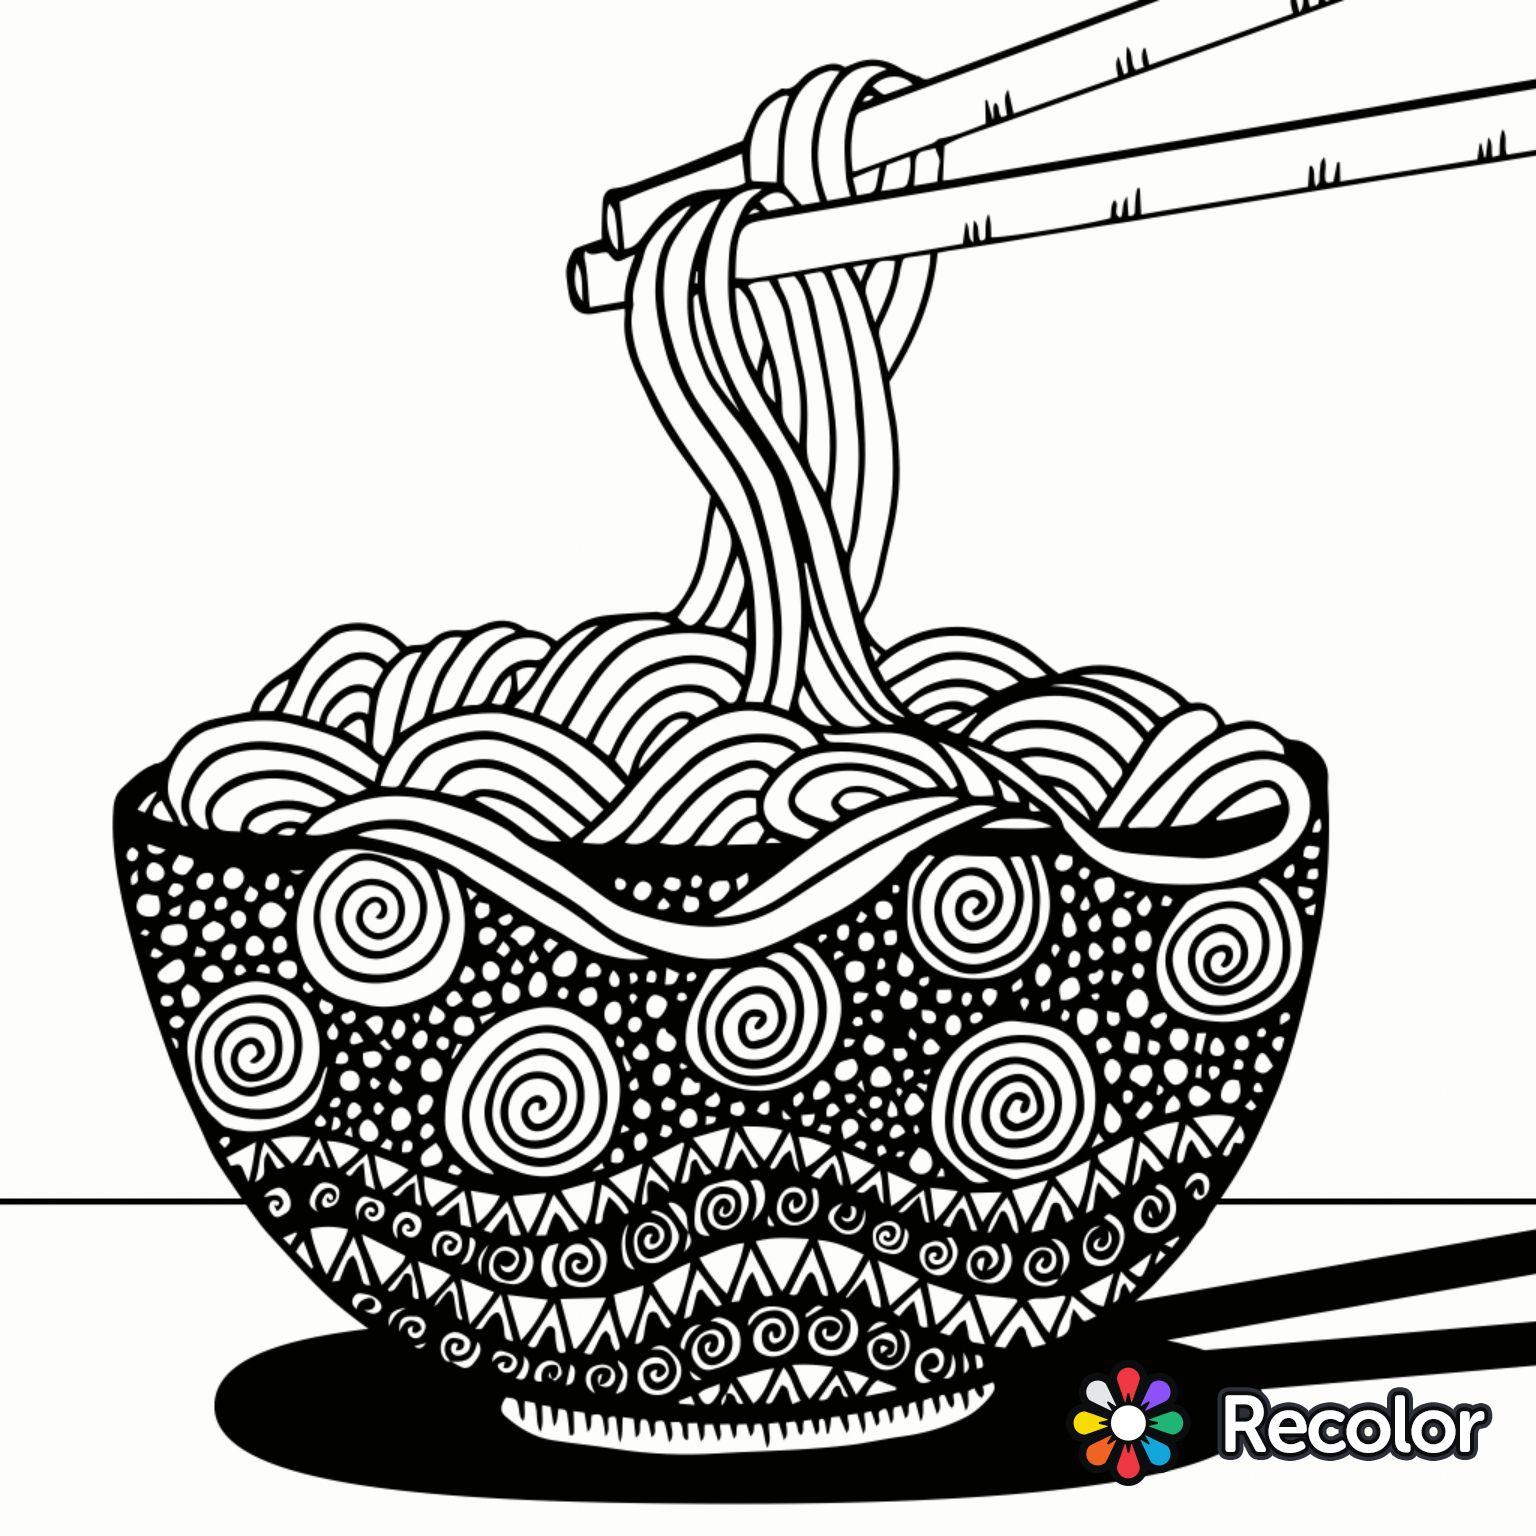 Coloring games like recolor - Noodles To Color Recolor App